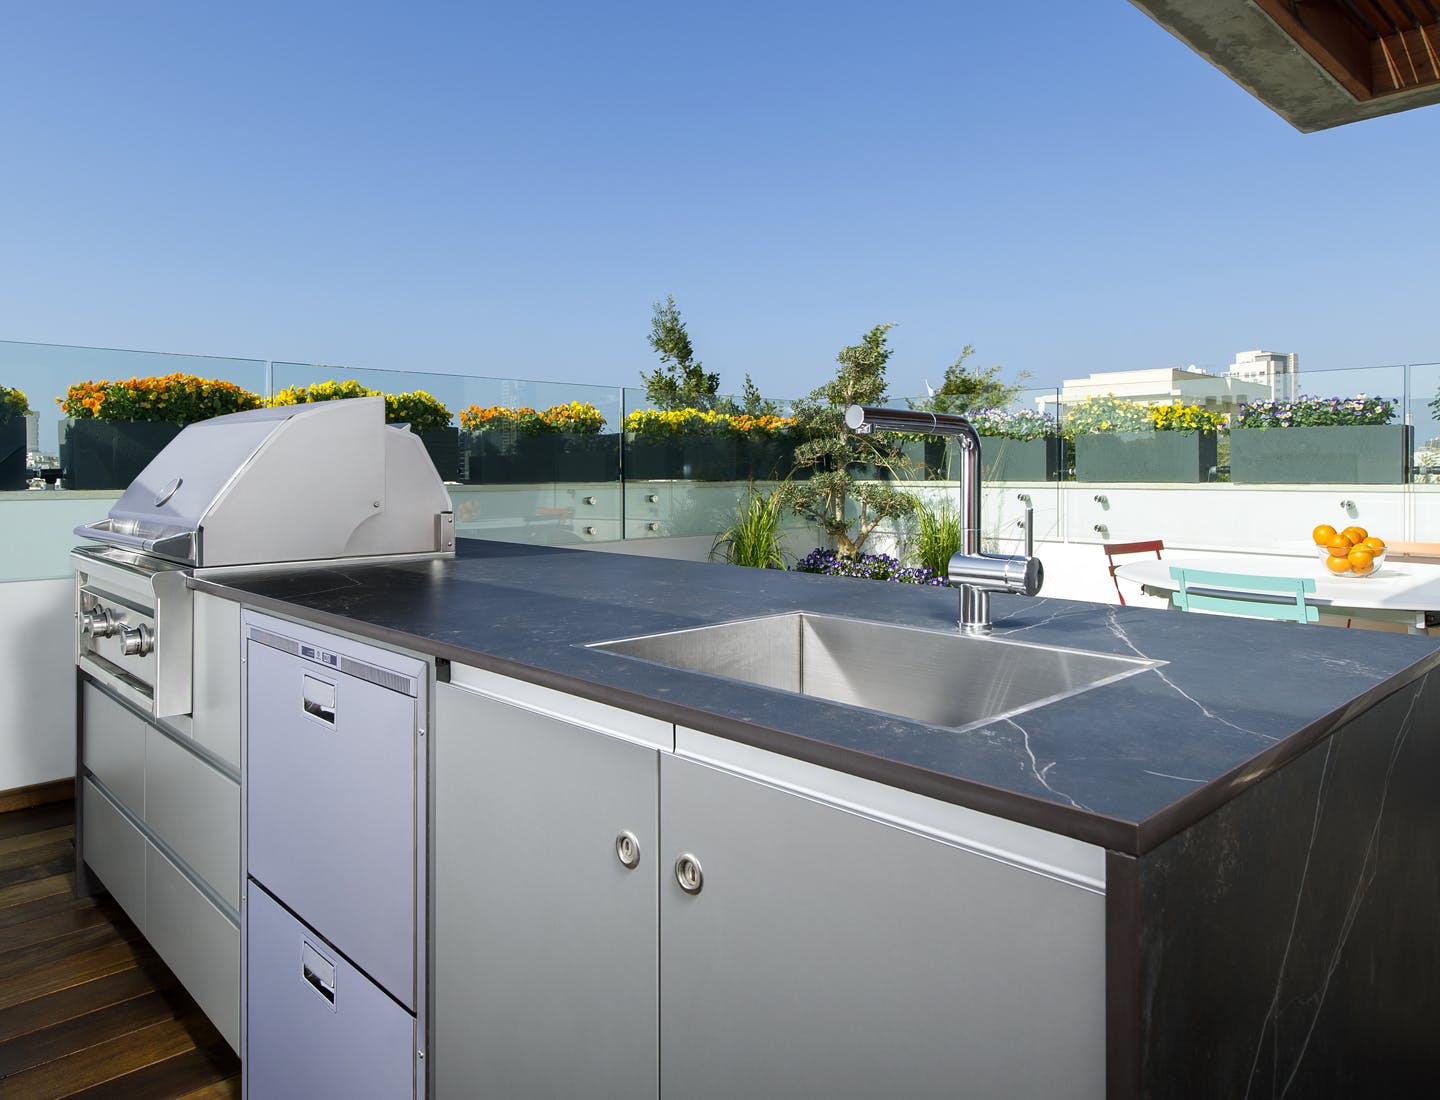 Outside use kitchens  - cocina exterior 3 43